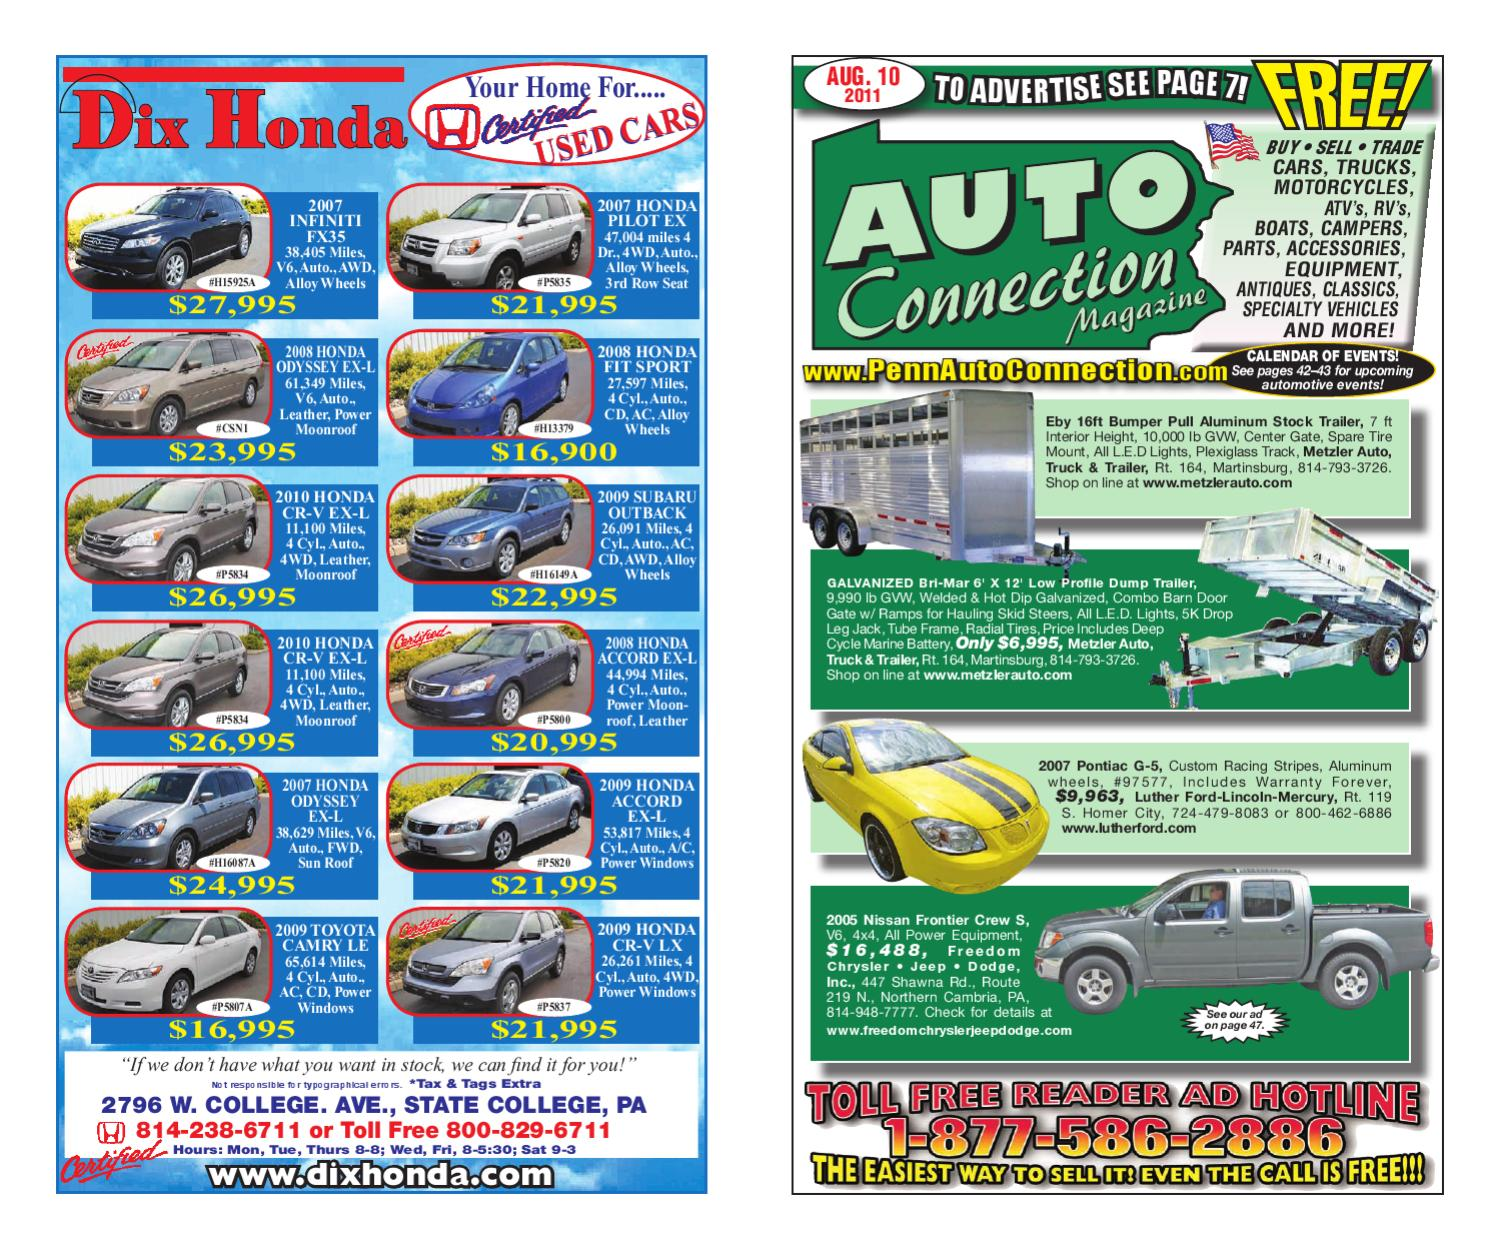 08-10-11 Auto Connection Magazine by Auto Connection ... on